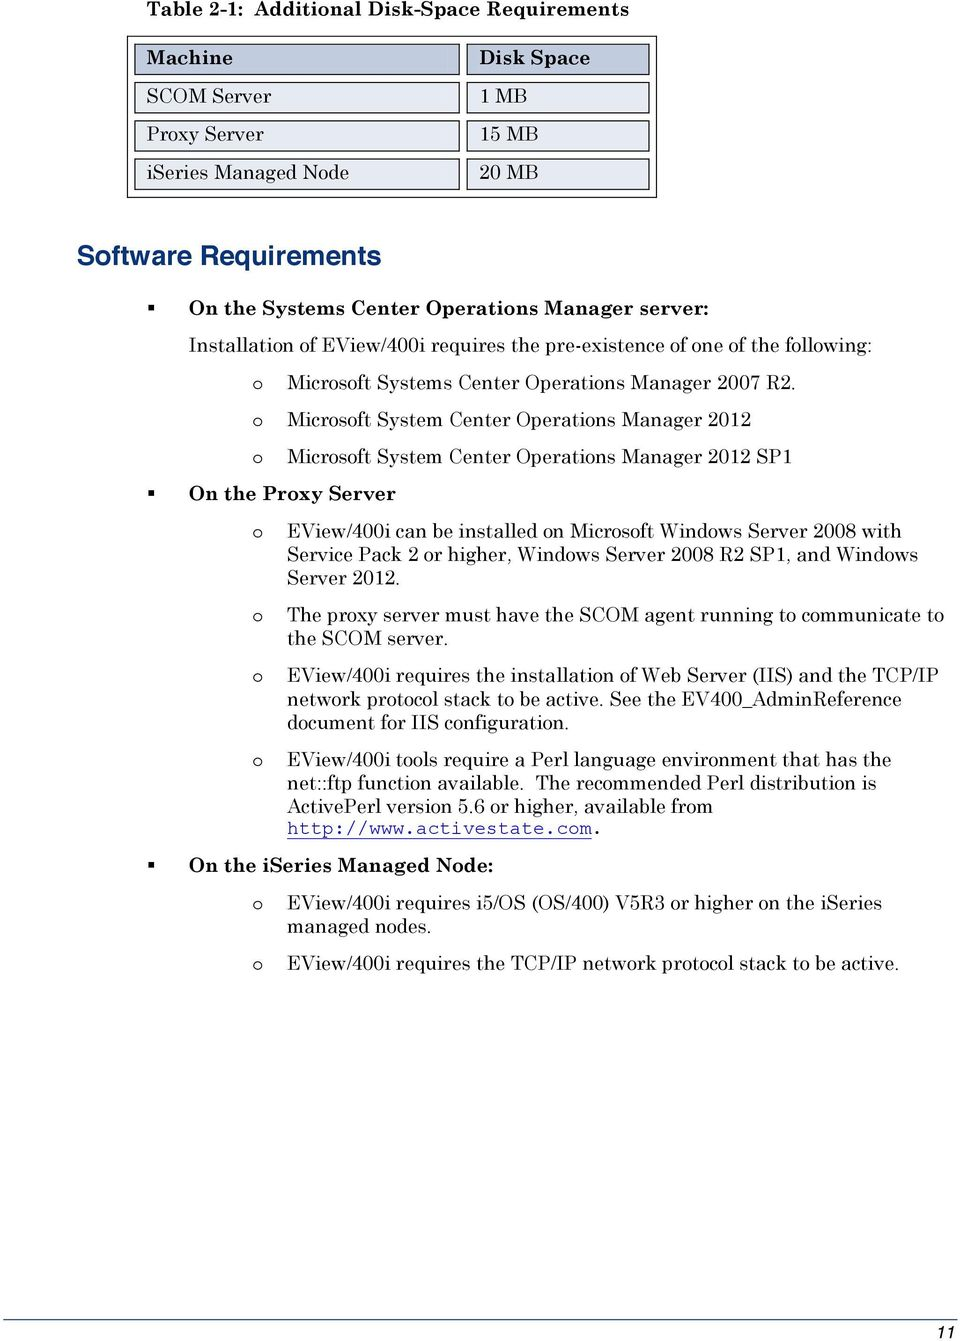 o Microsoft System Center Operations Manager 2012 o On the Proxy Server o o o o Microsoft System Center Operations Manager 2012 SP1 EView/400i can be installed on Microsoft Windows Server 2008 with